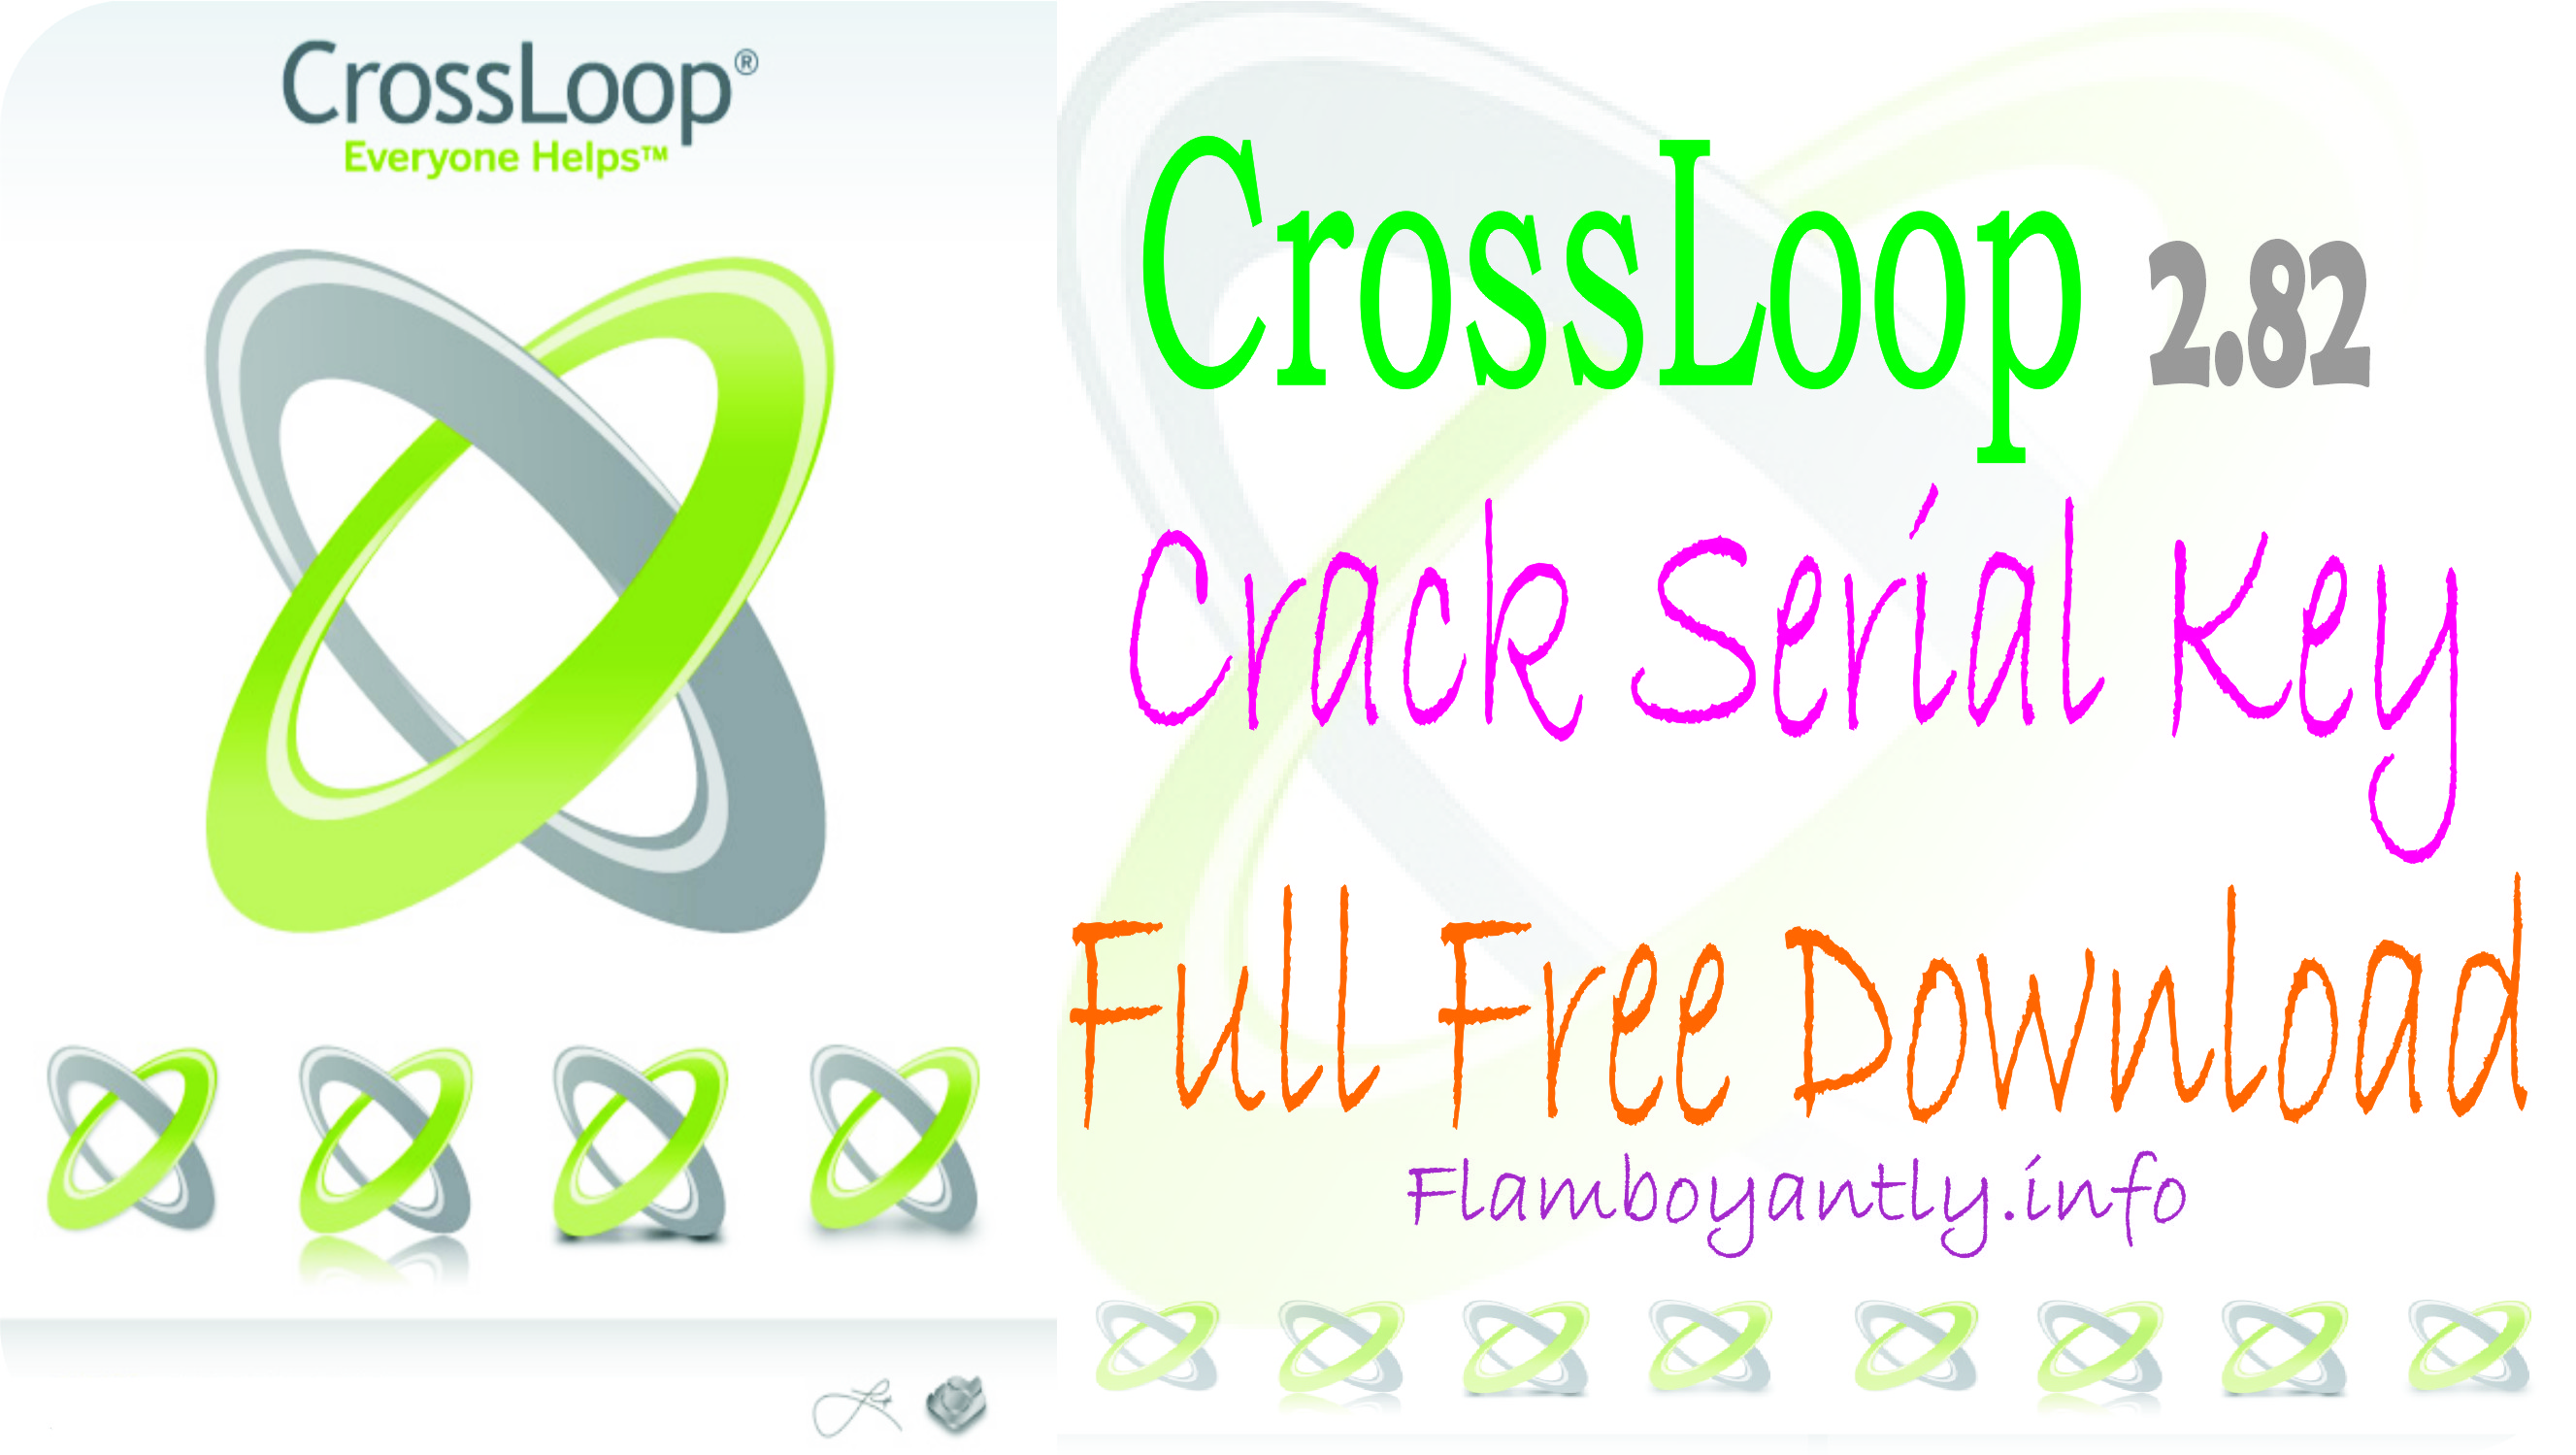 CrossLoop 2.82 Crack Serial Key Full Free Download